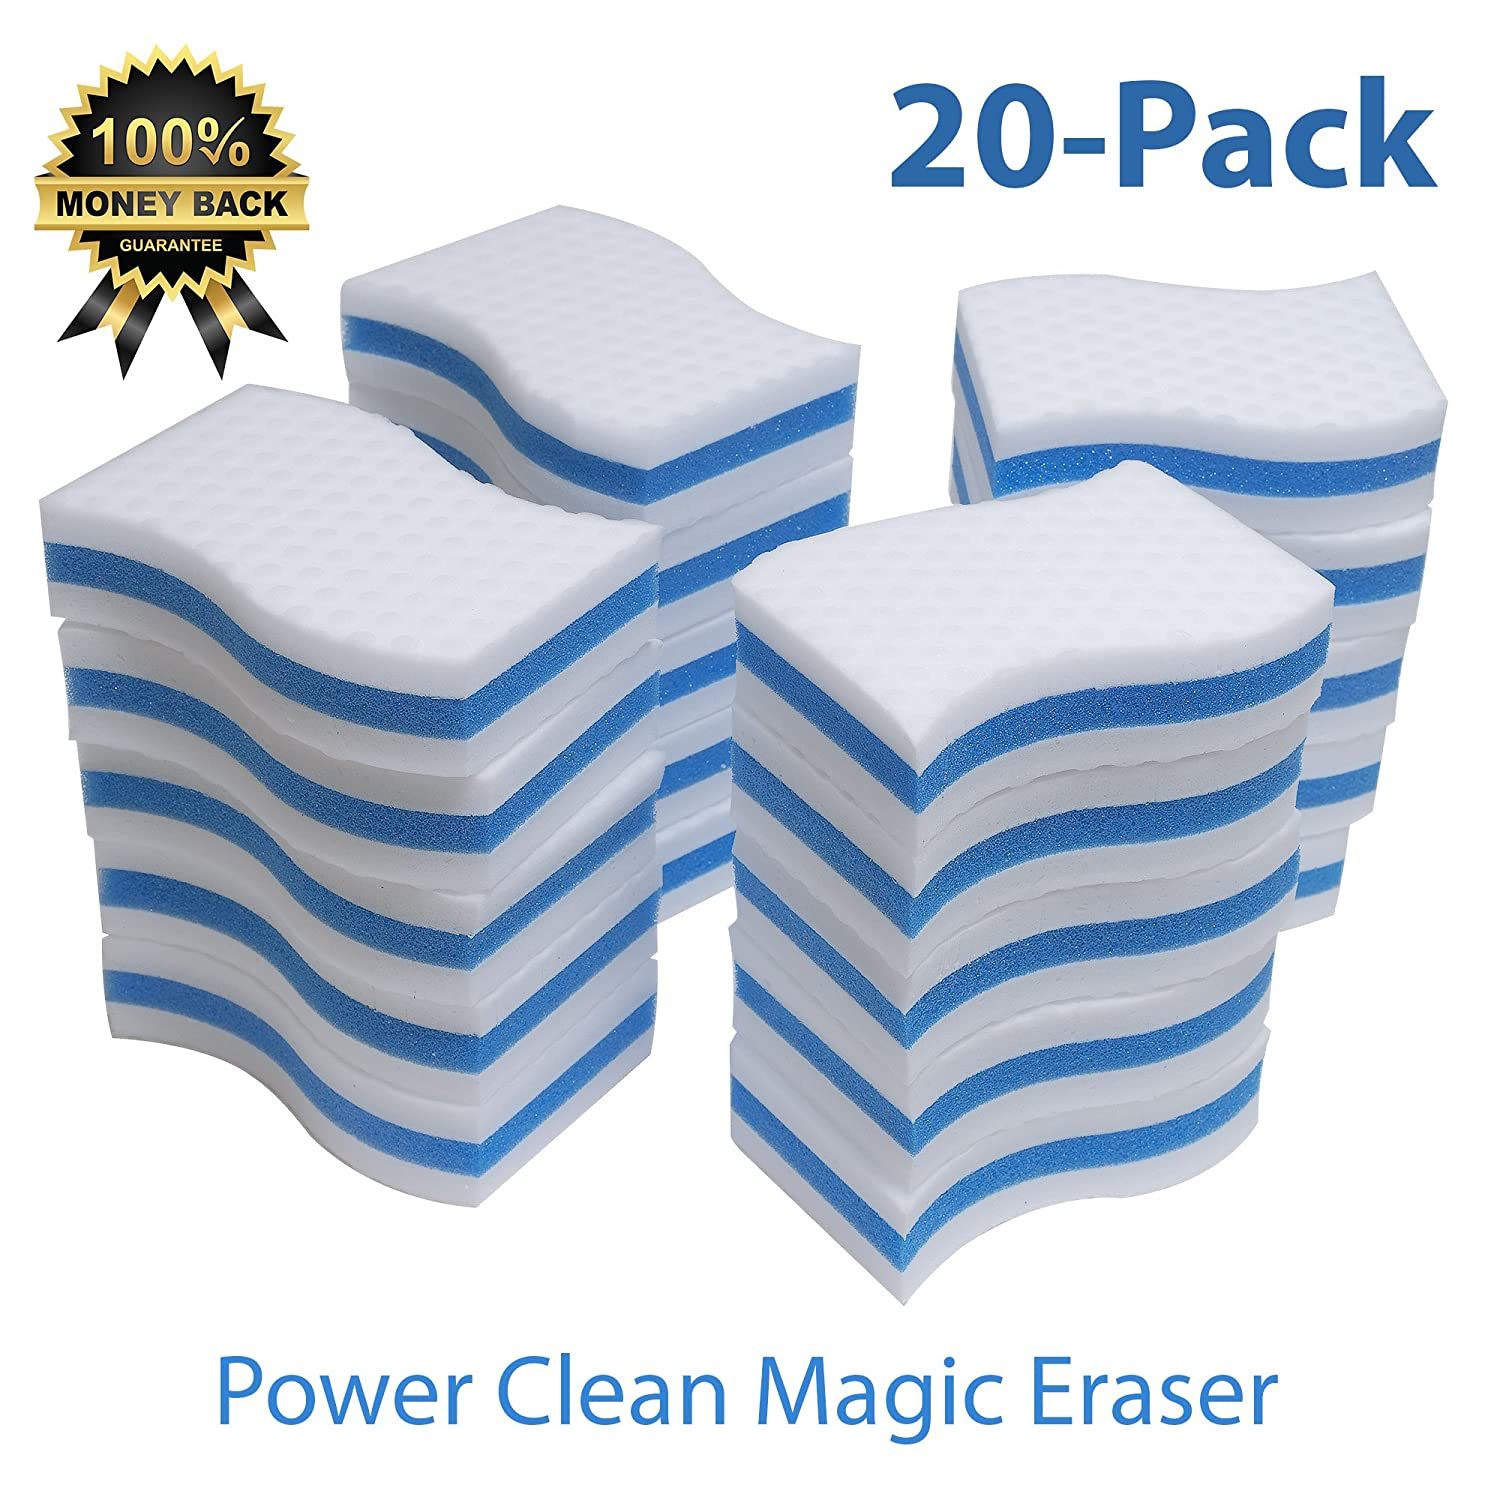 Amazon STK 20 Pack Extra Thick Power Clean Magic Eraser